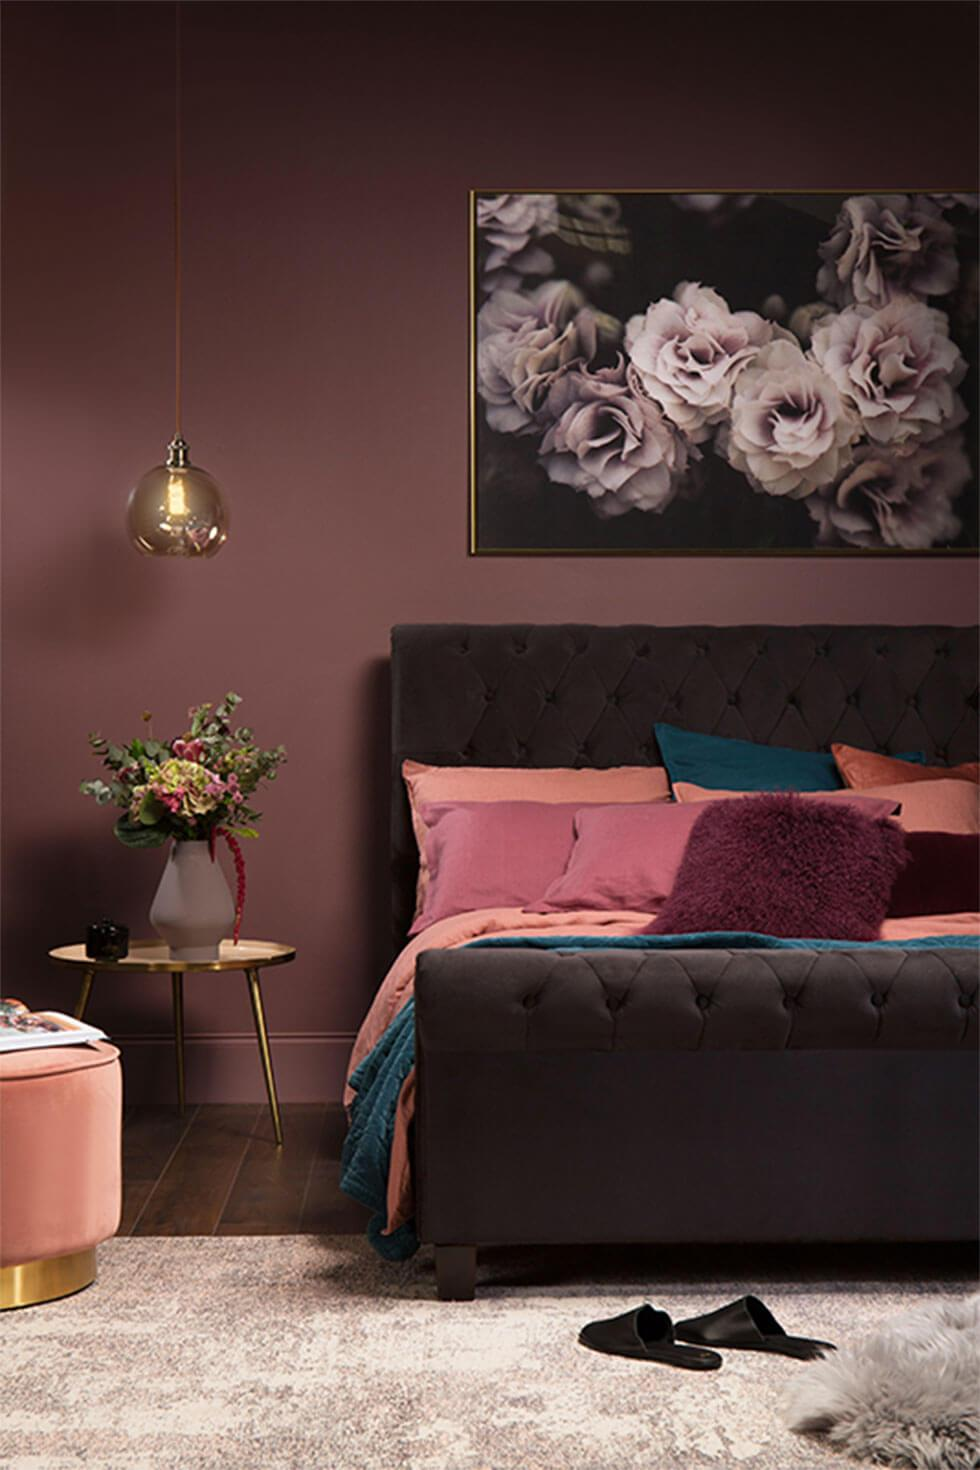 Black velvet bed with pink cushions and stool, with dark purple walls